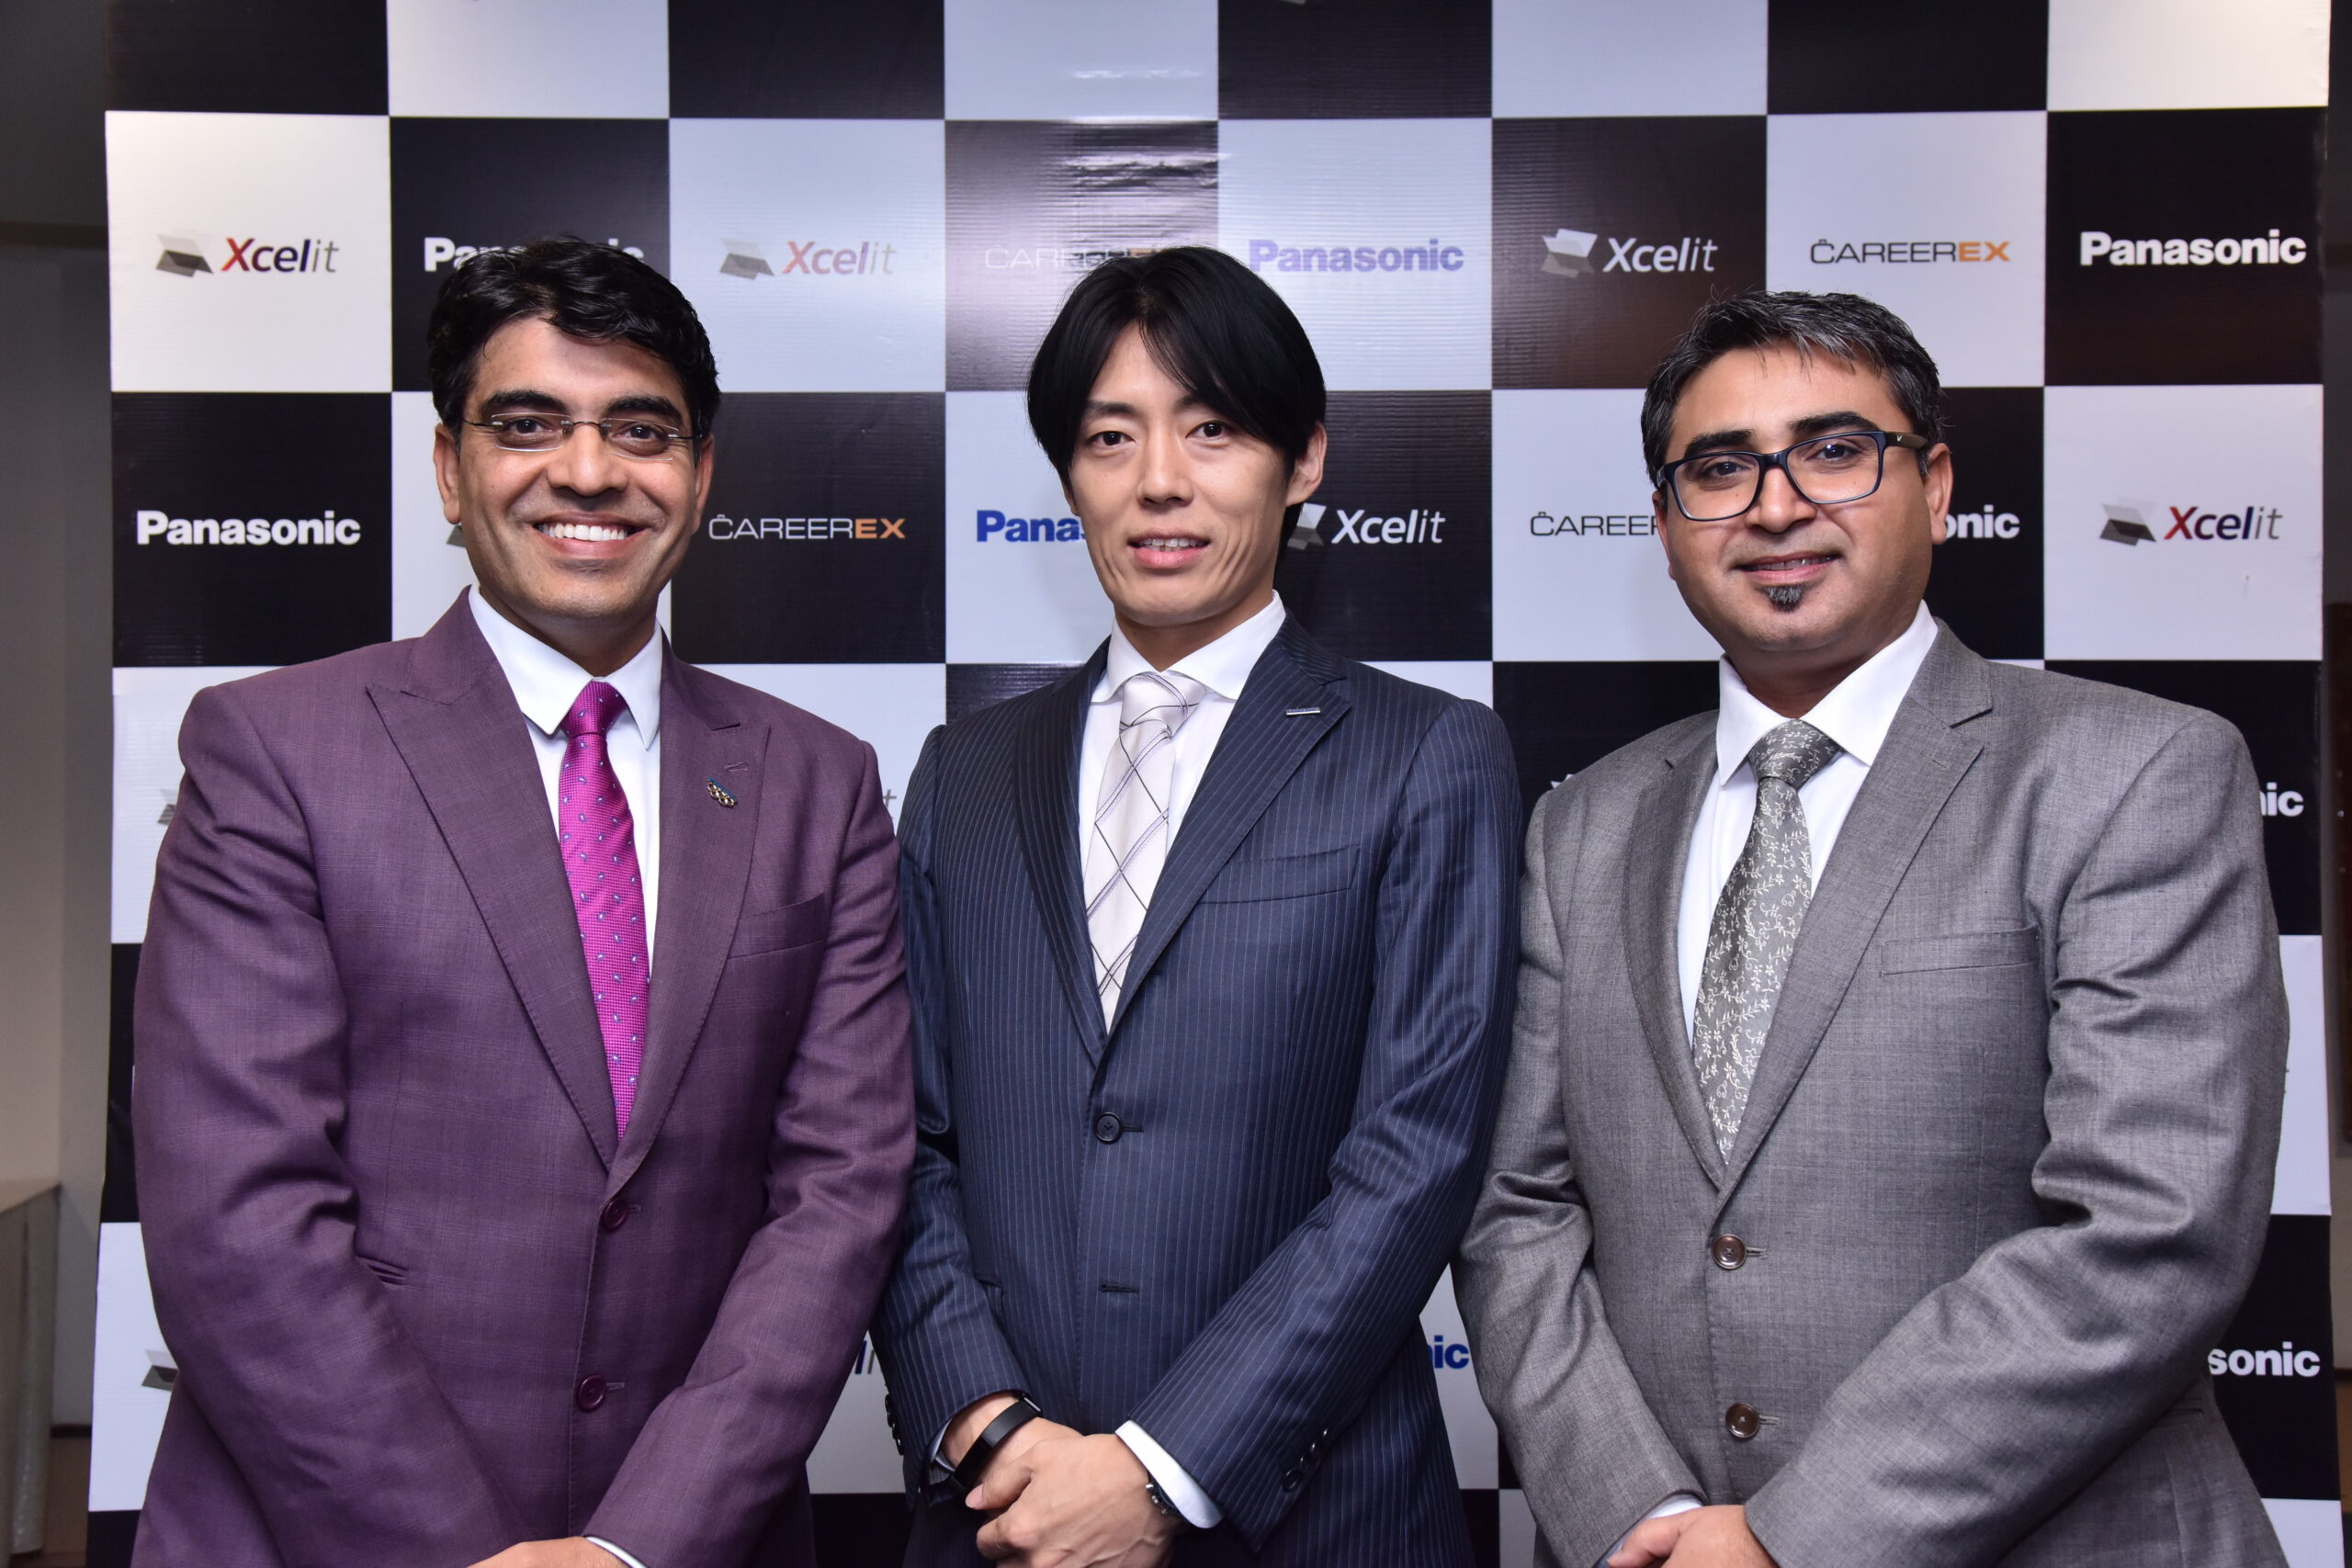 Panasonic India forays into education sector; launches education solutions CAREEREX and XCELIT to help up skill students be future ready